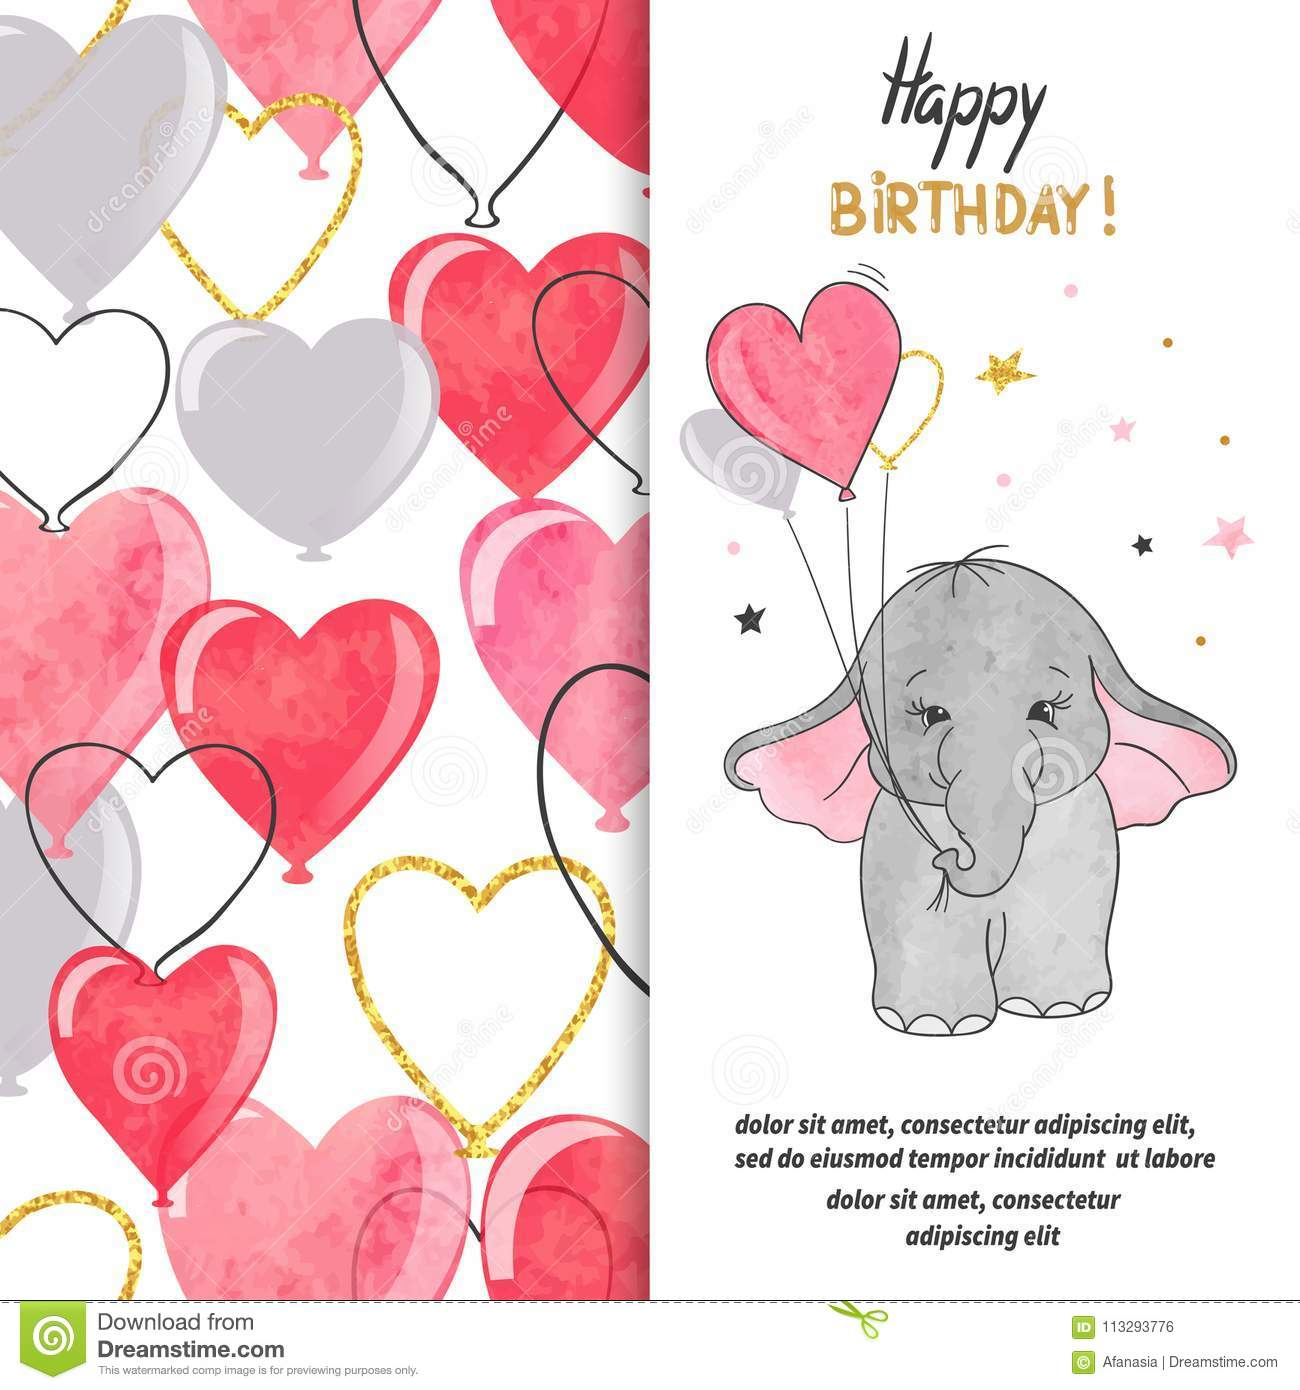 Happy Birthday greeting card design with cute baby elephant and heart balloons